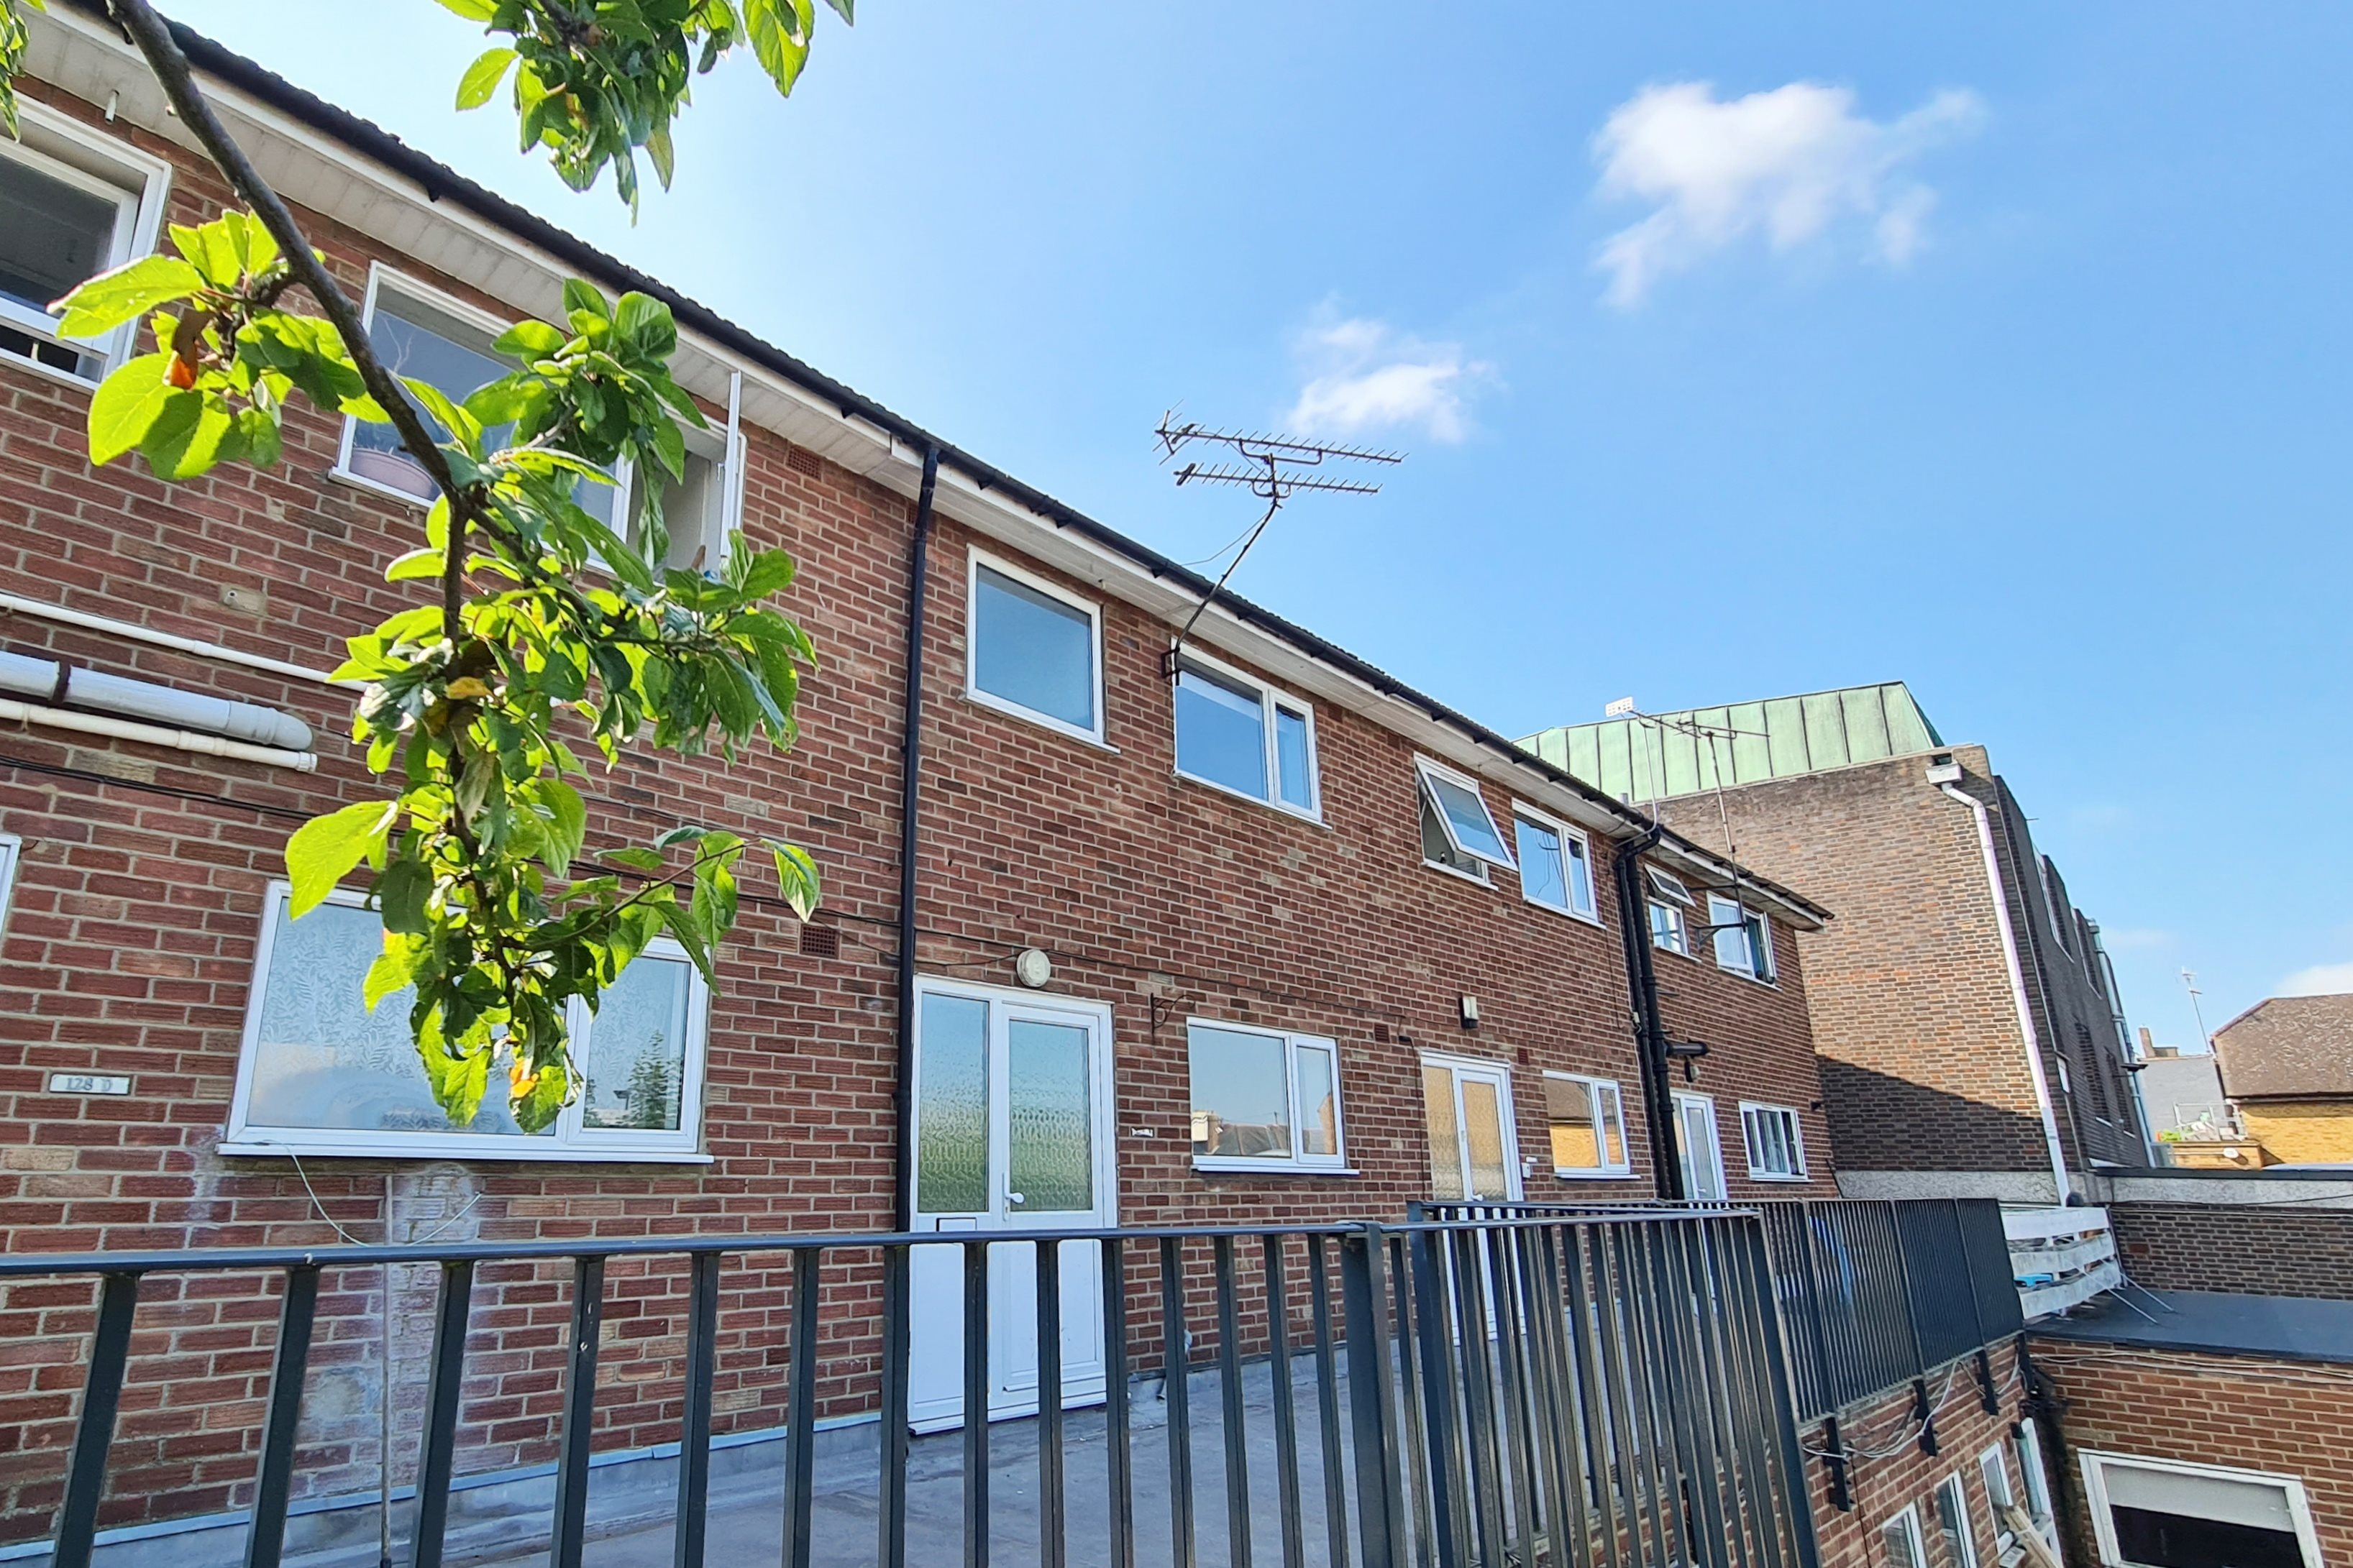 3 bed house to rent in High Street (Common Law Tenancy) (EPC Exempt), Rayleigh - Property Image 1